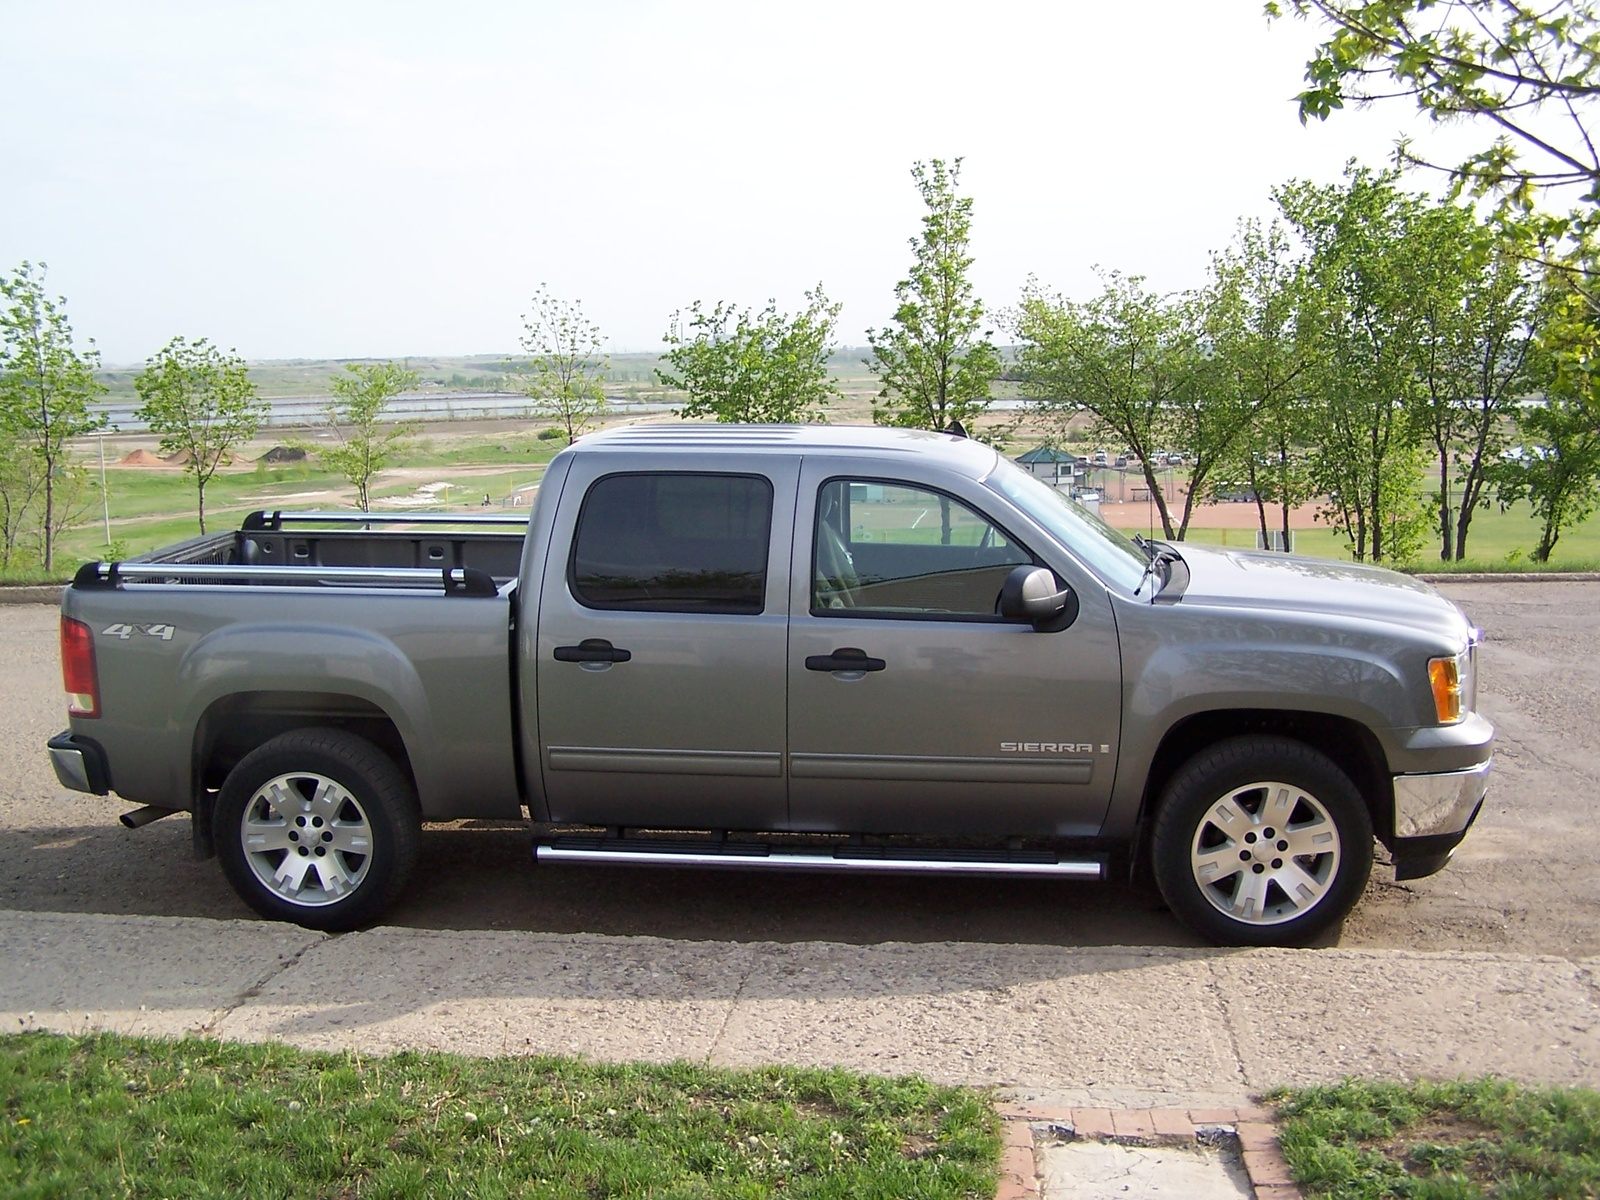 gmc sierra 1500 crew cab photos and comments. Black Bedroom Furniture Sets. Home Design Ideas